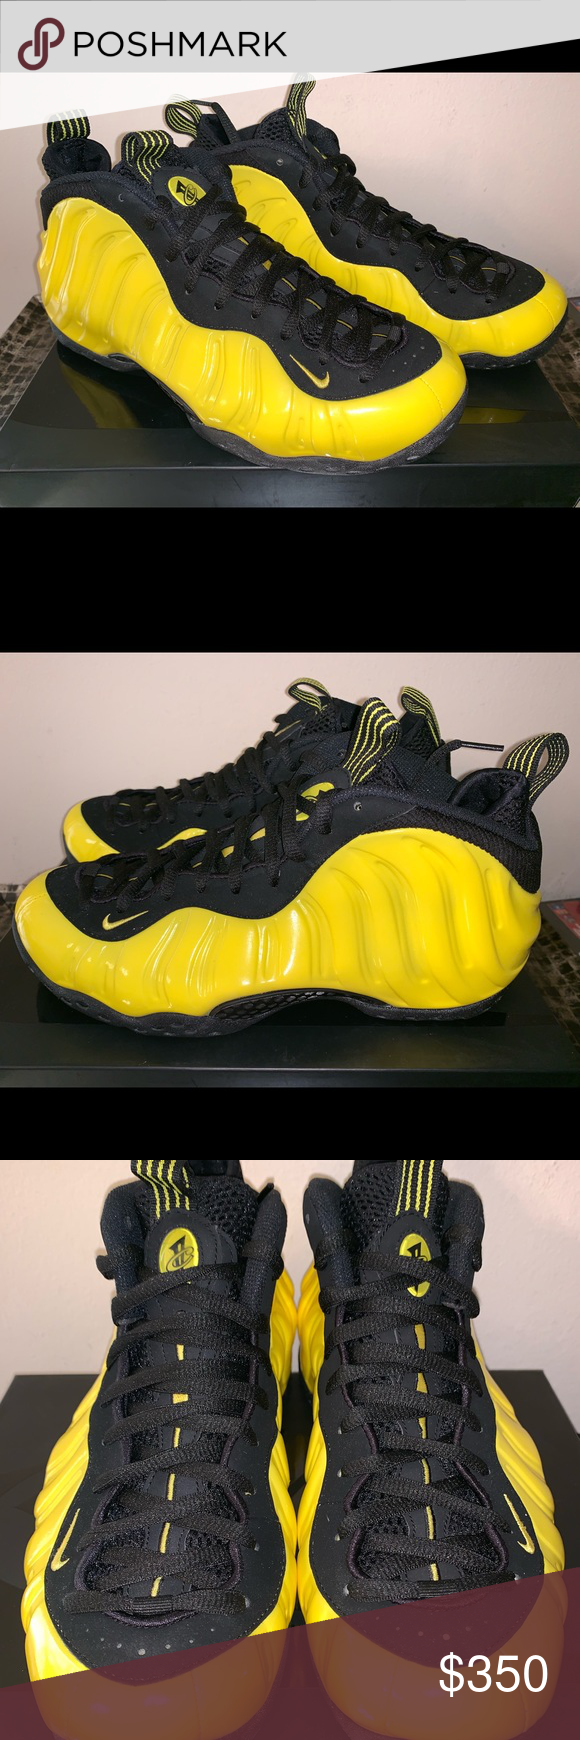 virar interior de primera categoría  Nike Air Foamposite One Optic Yellow Wu Tang Nike SKU Number is 314996-701.  Shoes are brand new dead stock in the original box and have n… | Nike air,  Fashion, Nike